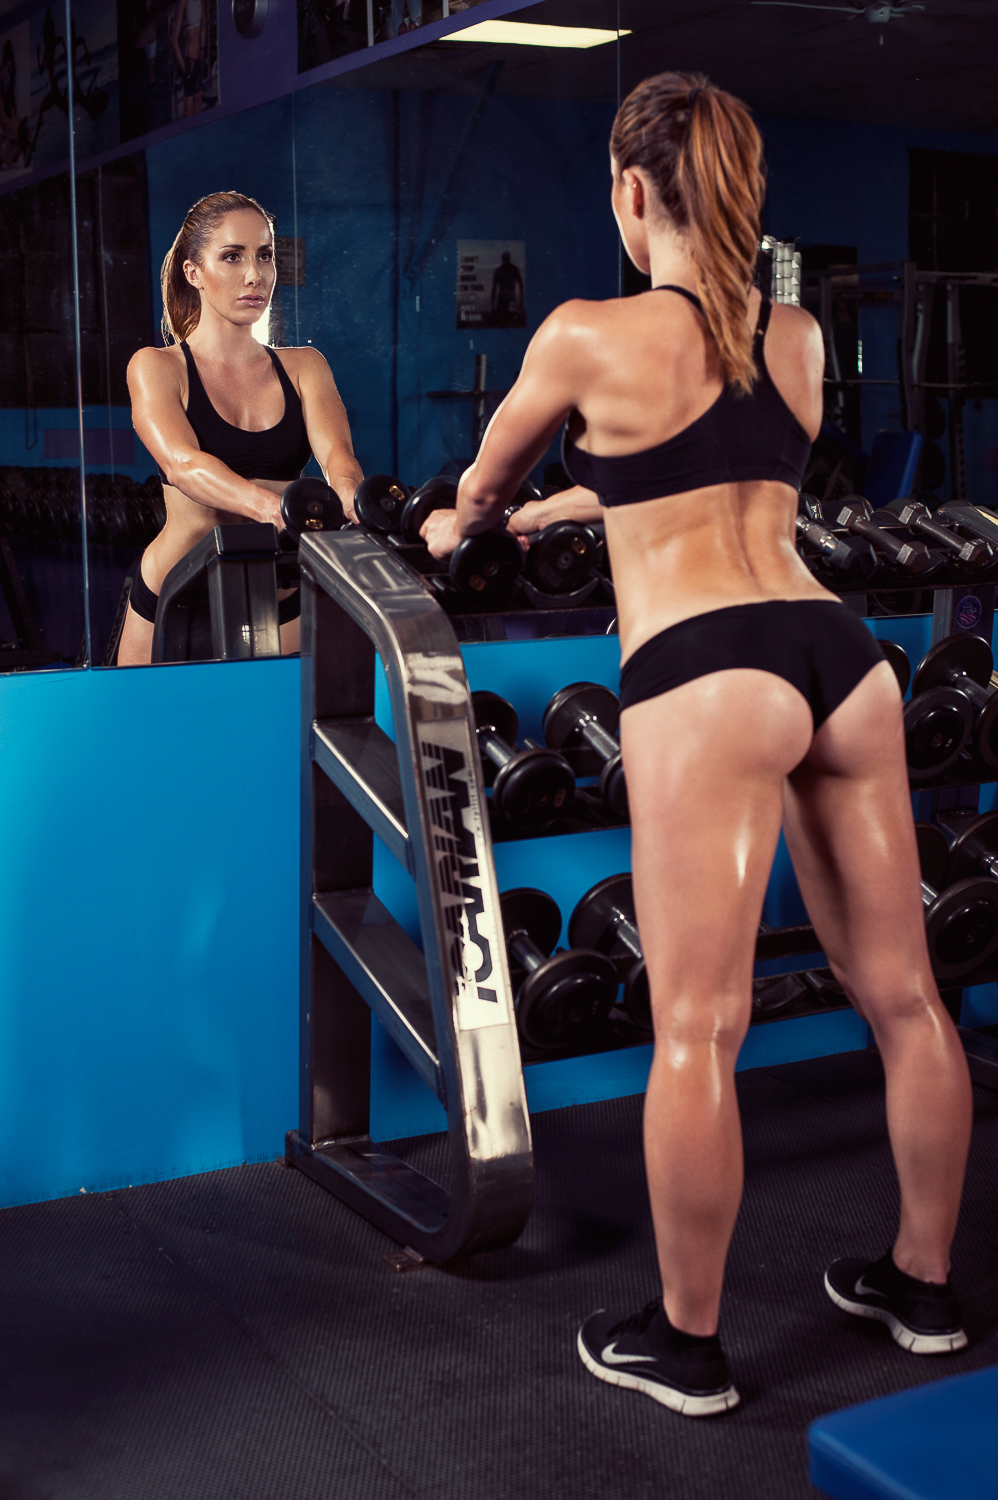 Hamilton Toronto Fitness Photographer - Marek Michalek - In The Gym.jpg